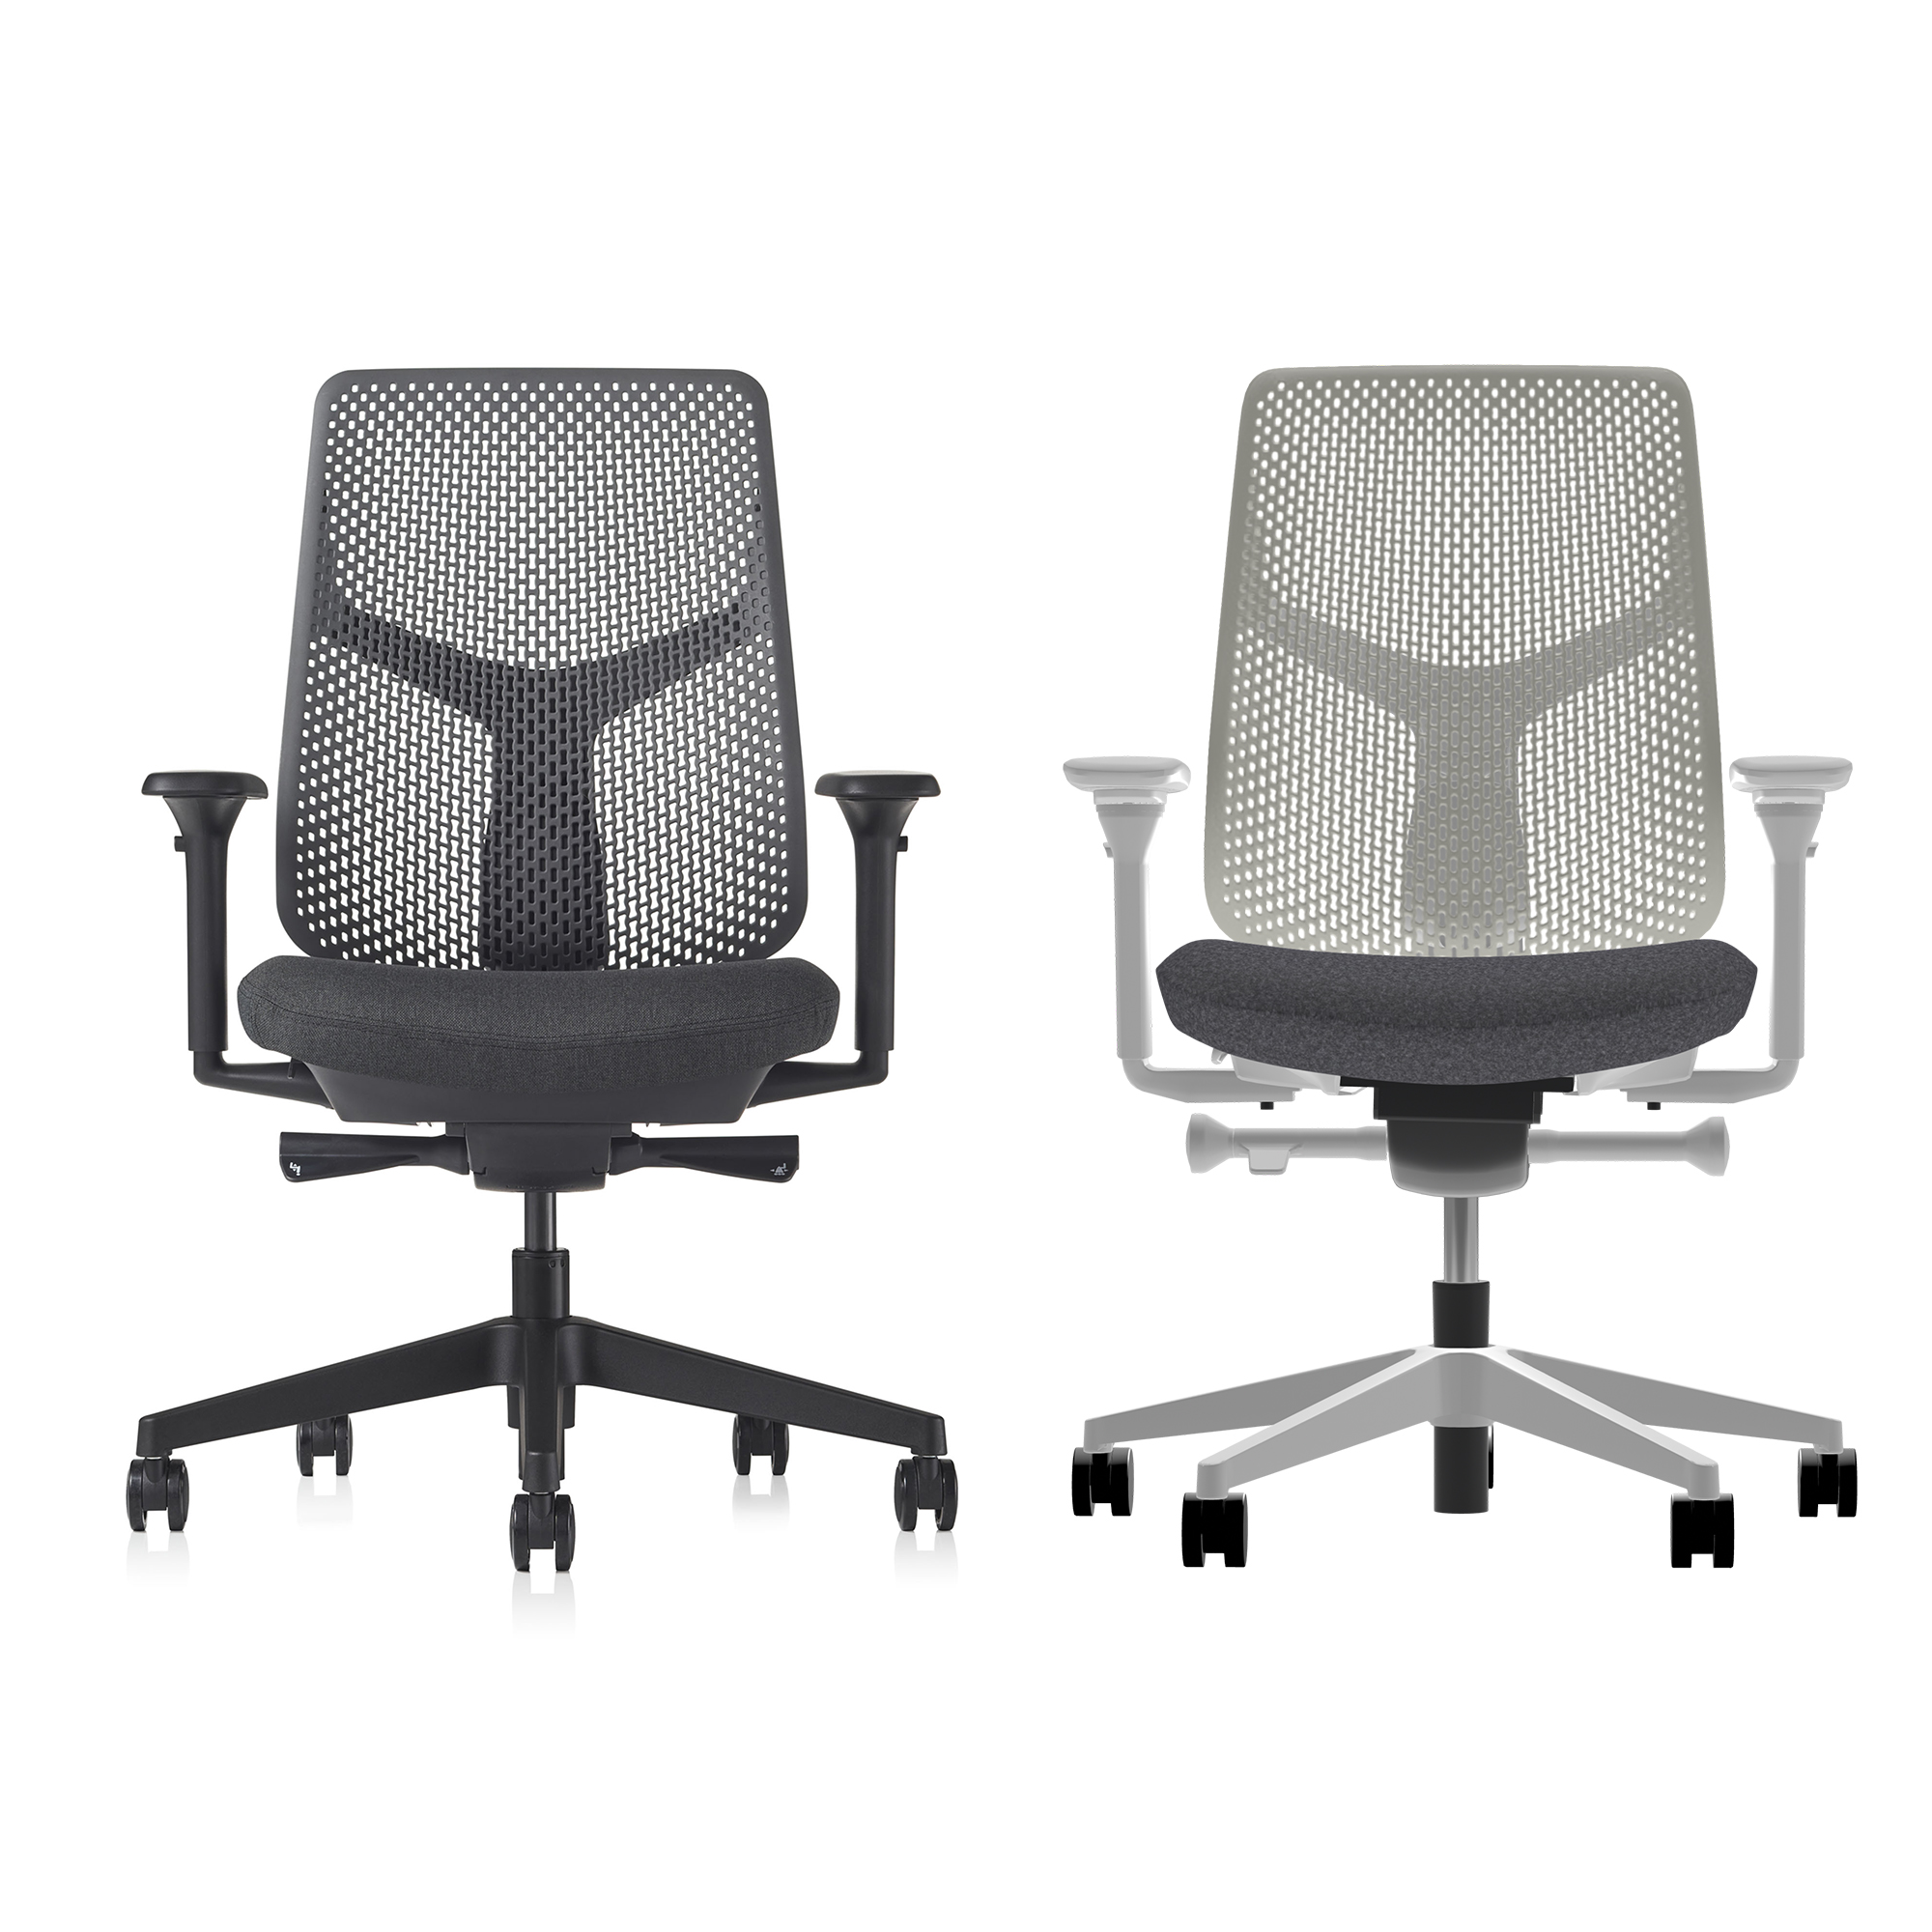 Verus Chair - Triflex Polymer (Granite, Black Combo) In-stock: Low